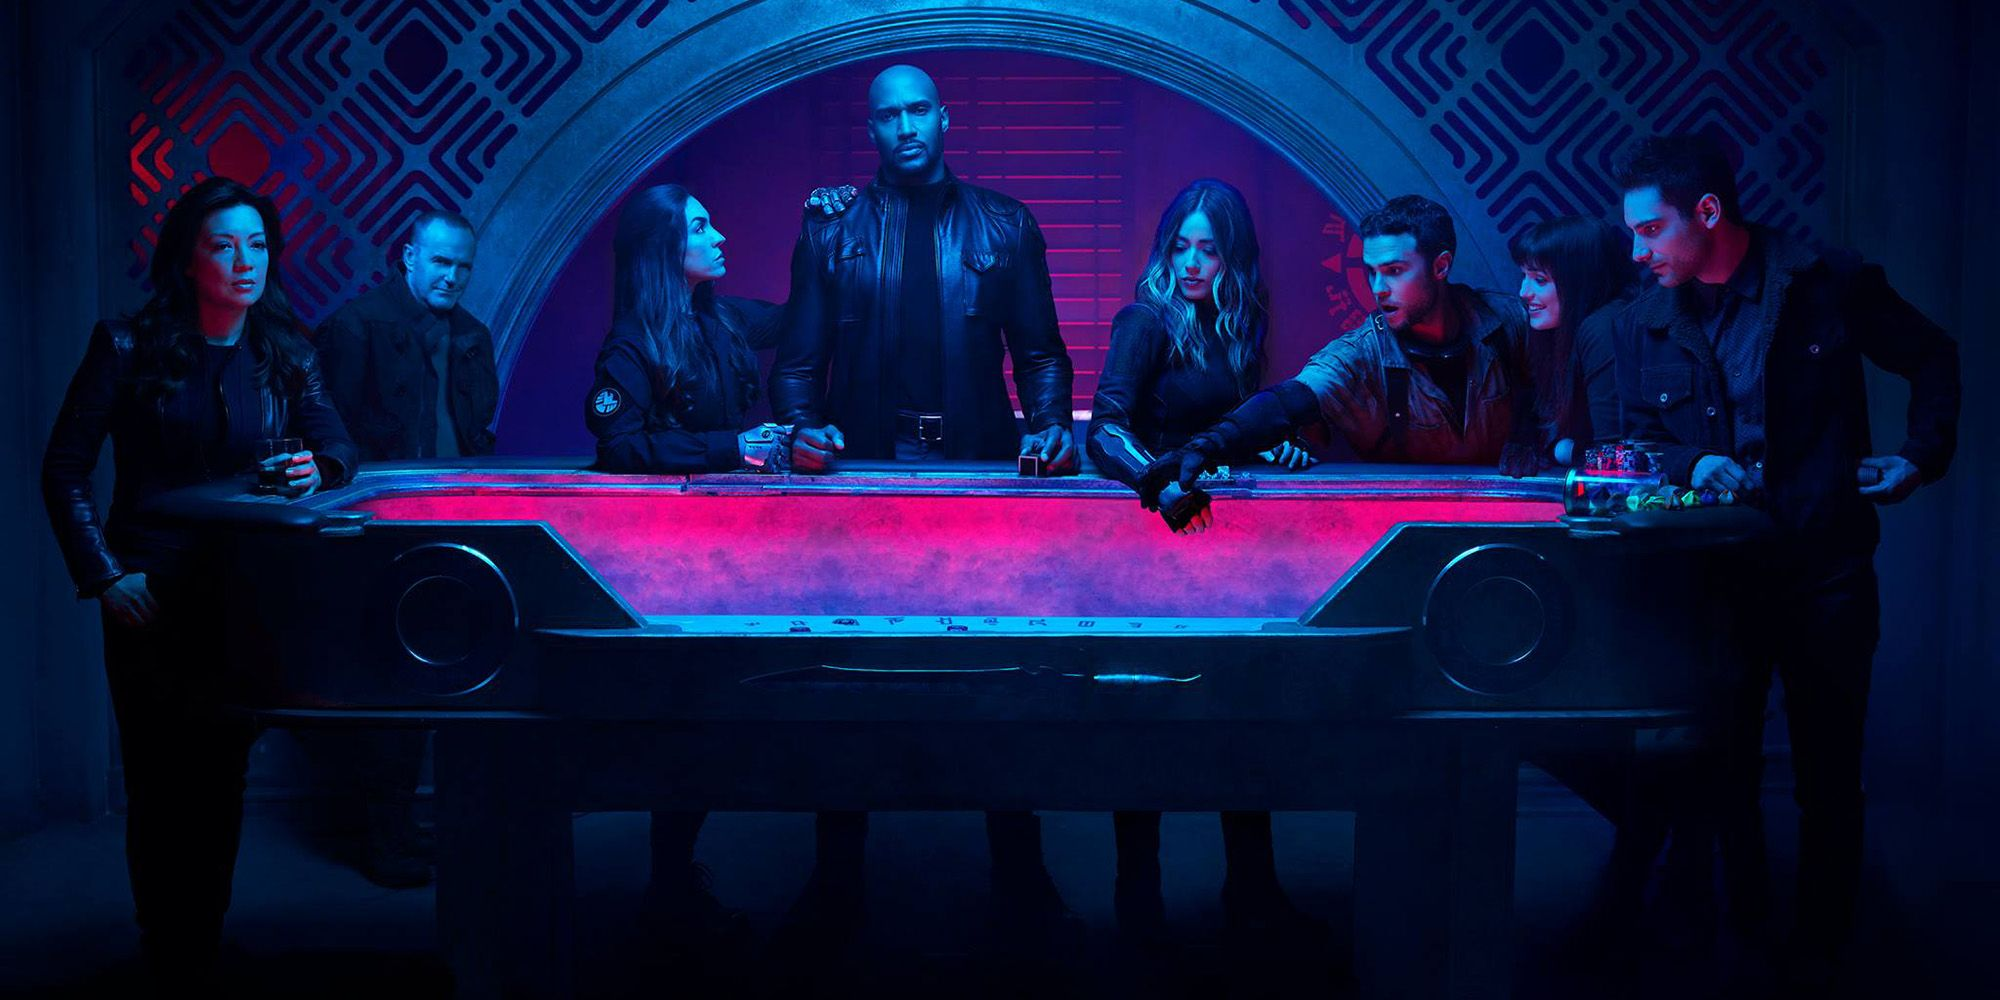 Marvel's Agents of SHIELD Assemble in Season 6 Character Posters